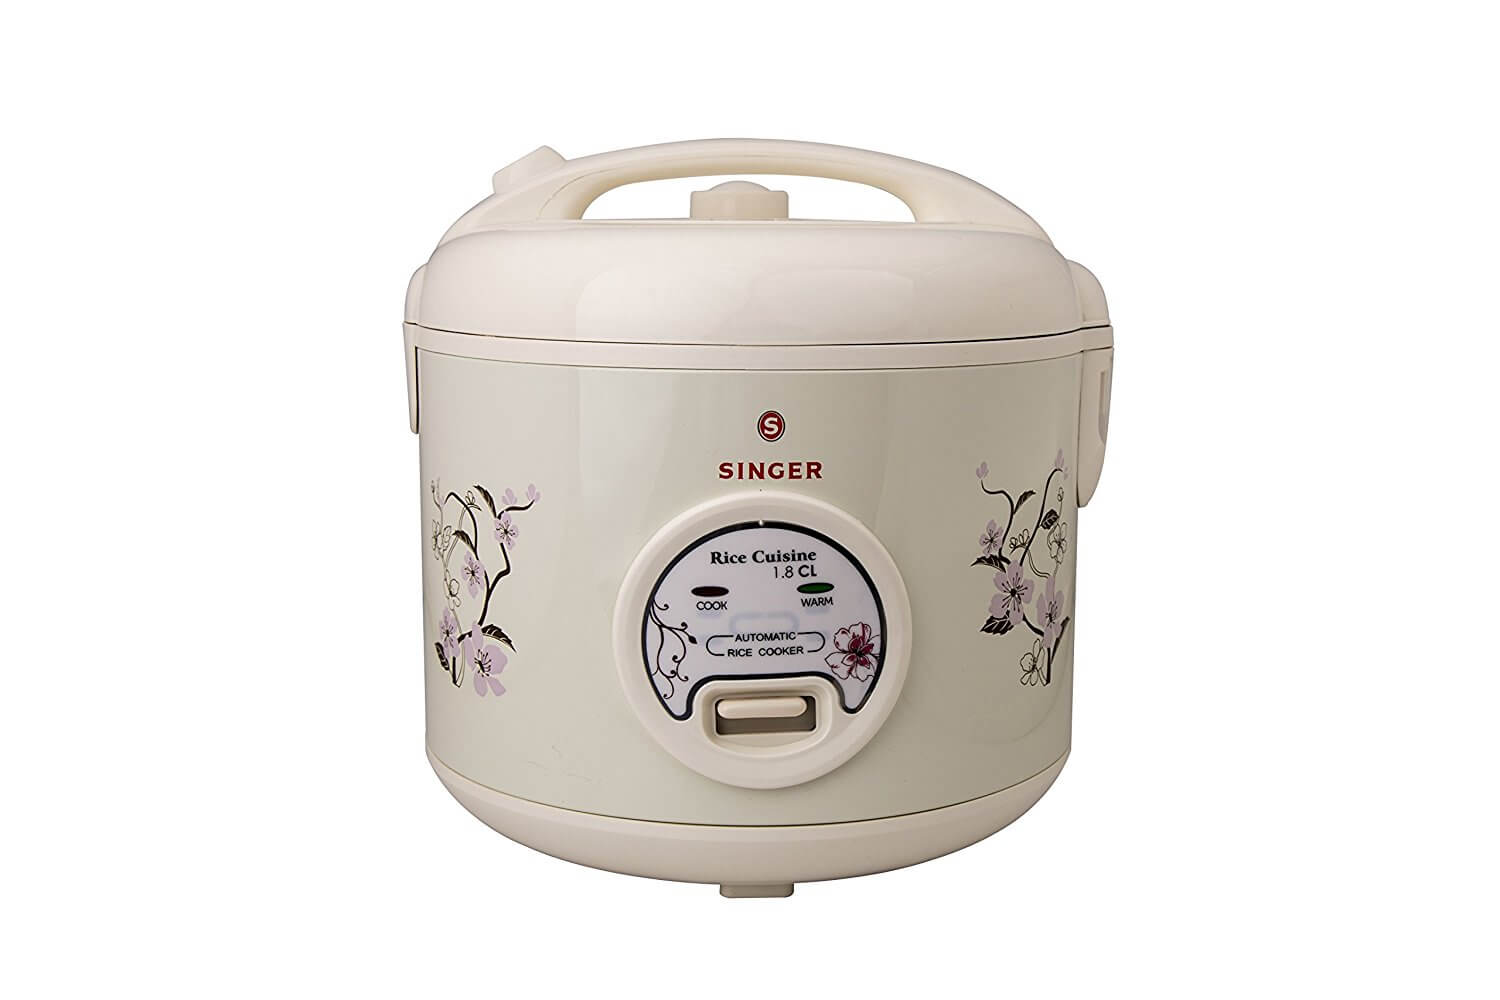 Singer Rice Cuisine 1.8 Closed Lid Rice Cooker 700 watts